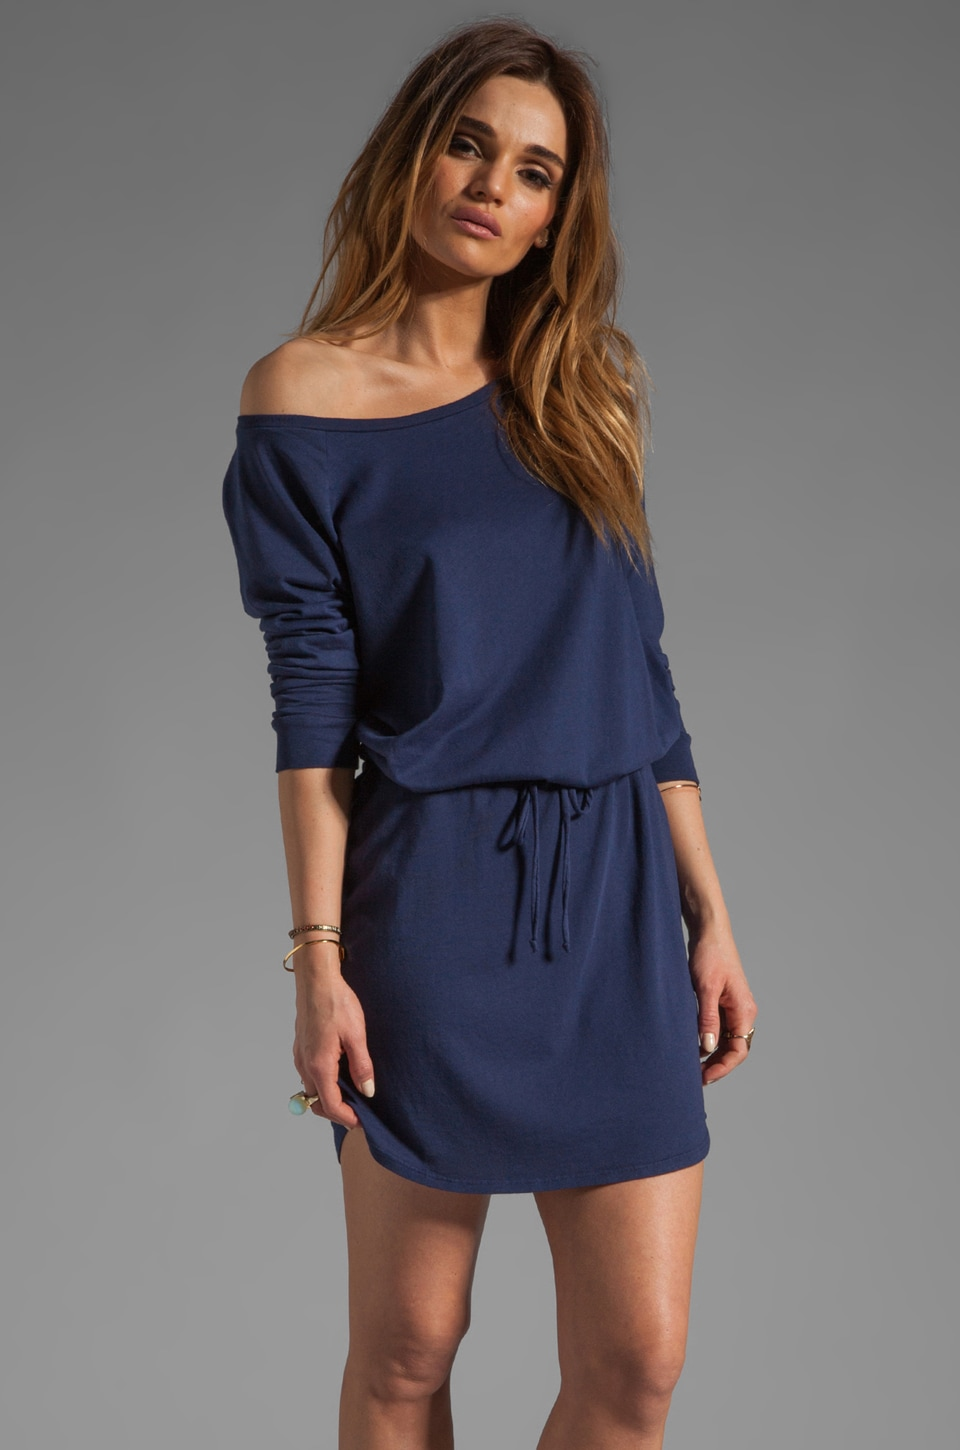 Soft Joie Analee Dress in Peacoat